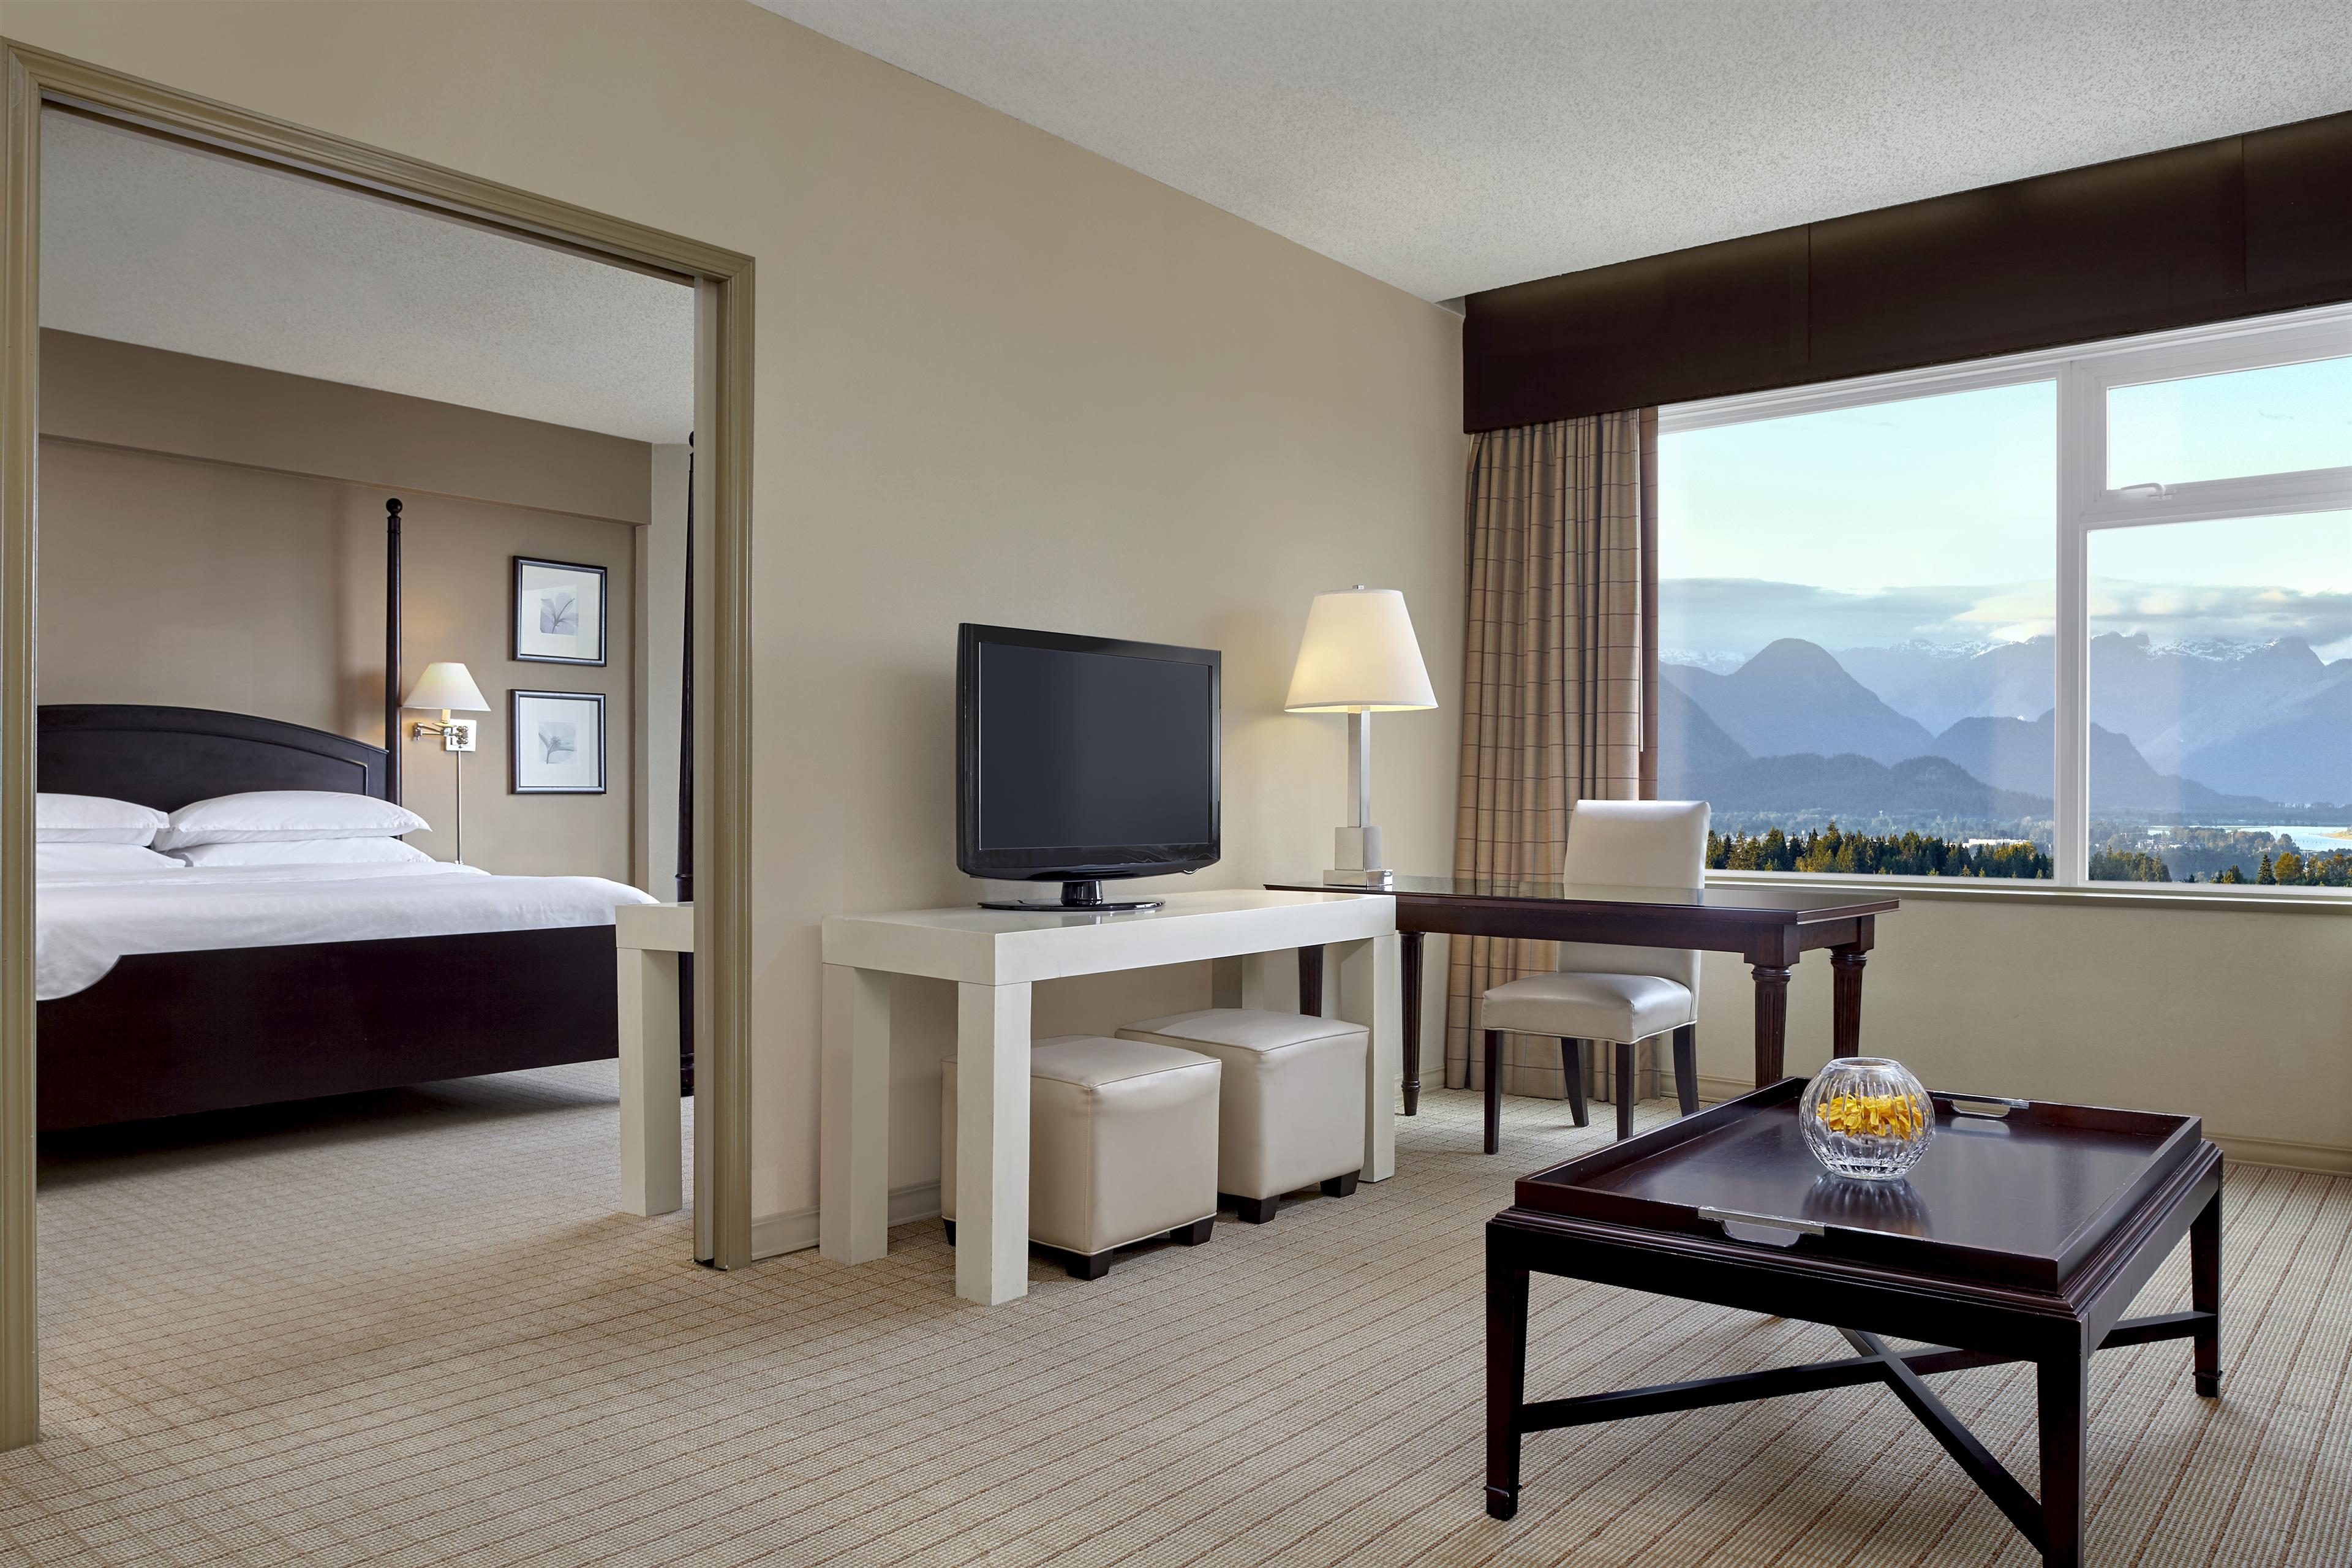 Sheraton Vancouver Guildford Hotel in Surrey: Penthouse Suite with Mountain View